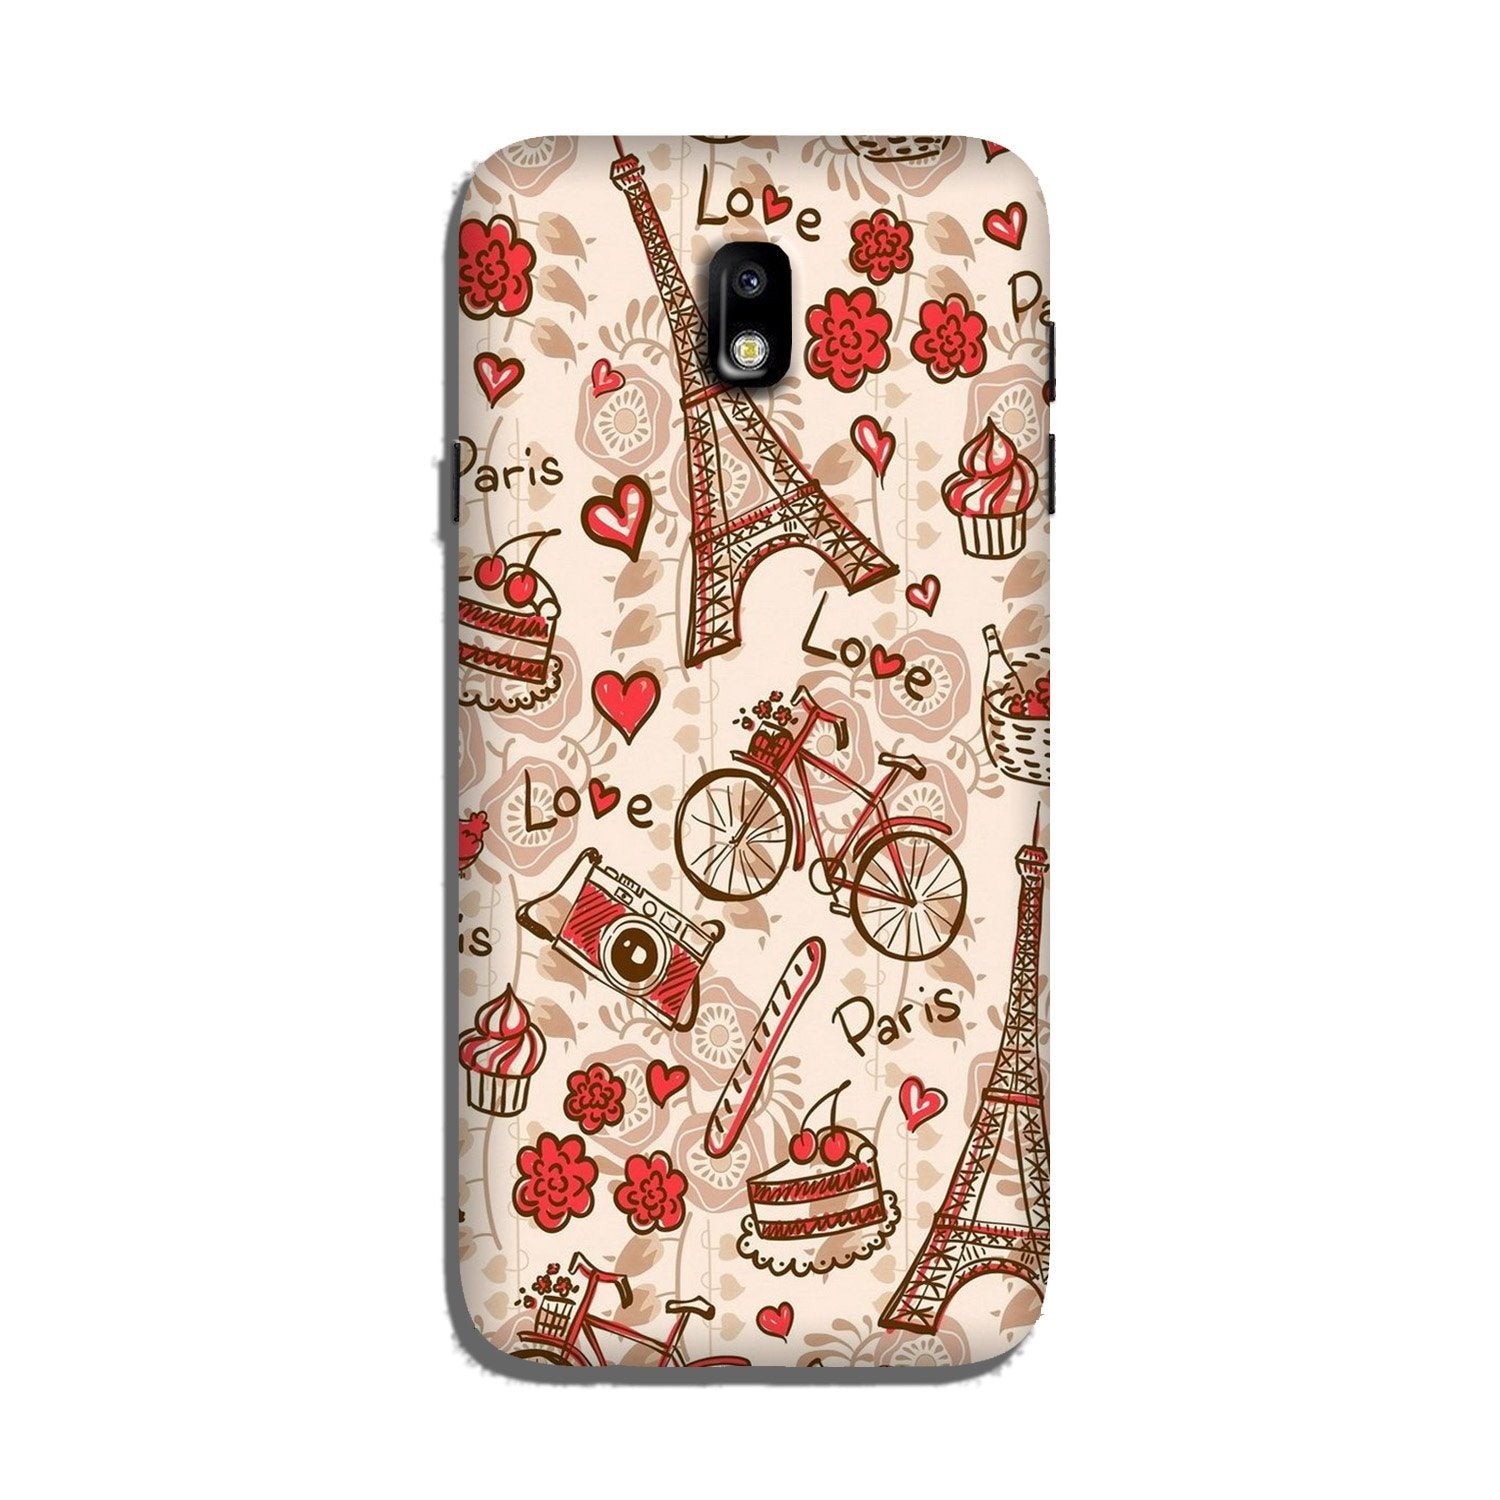 Love Paris Case for Galaxy J7 Pro  (Design - 103)